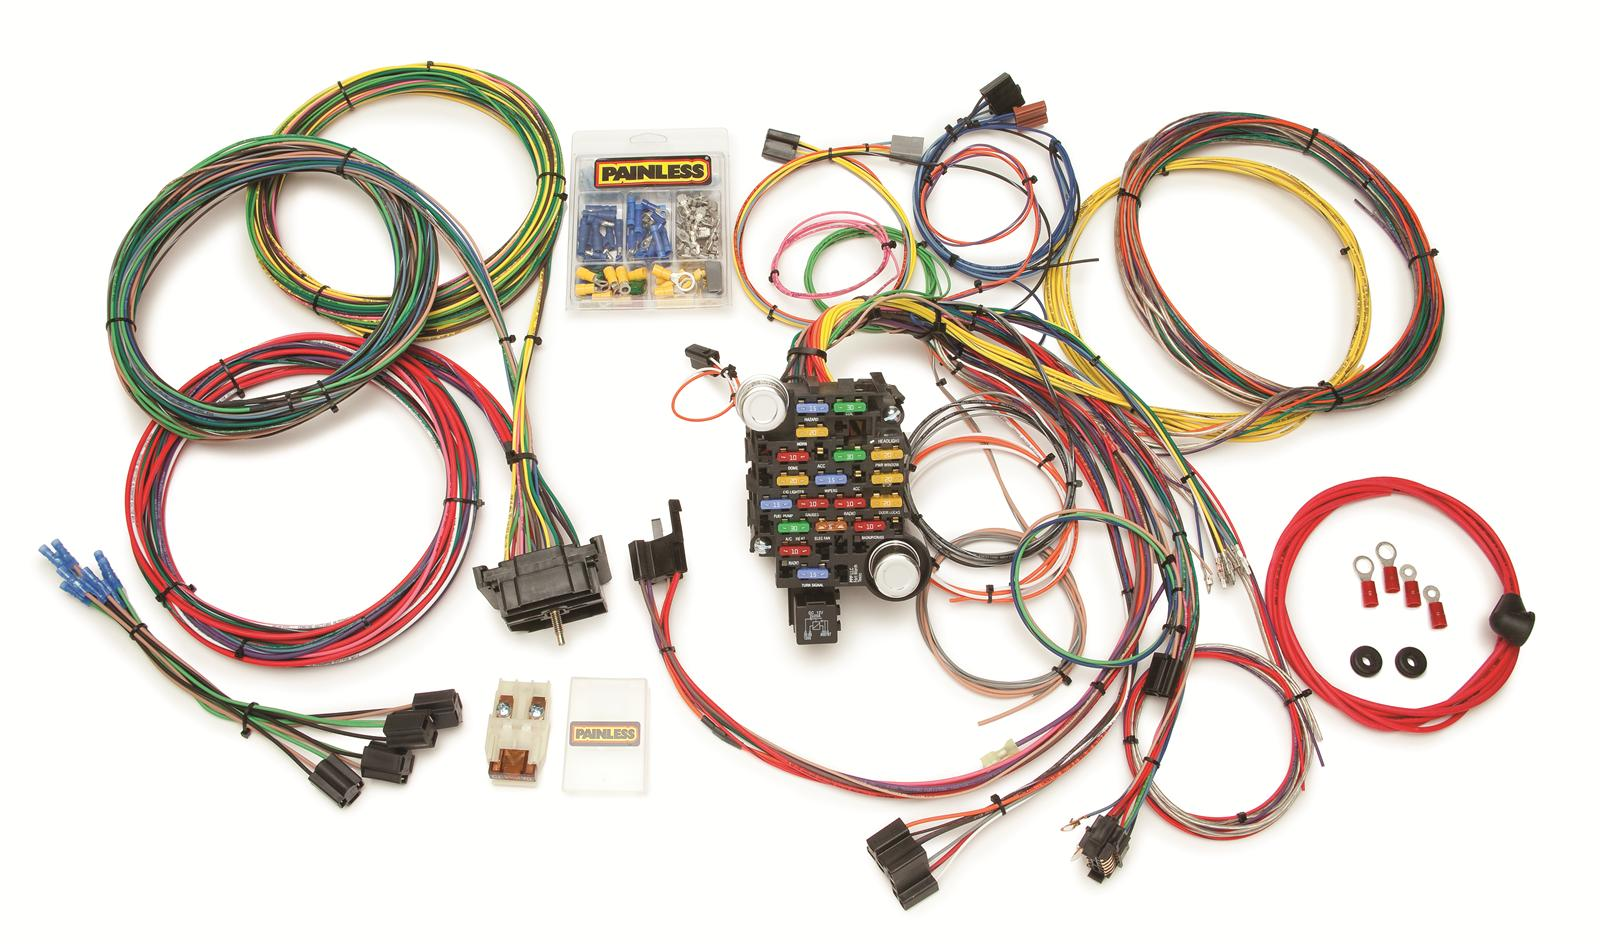 prf 10206_xl painless performance gmc chevy truck harnesses 10206 free painless wiring harness rebate at n-0.co